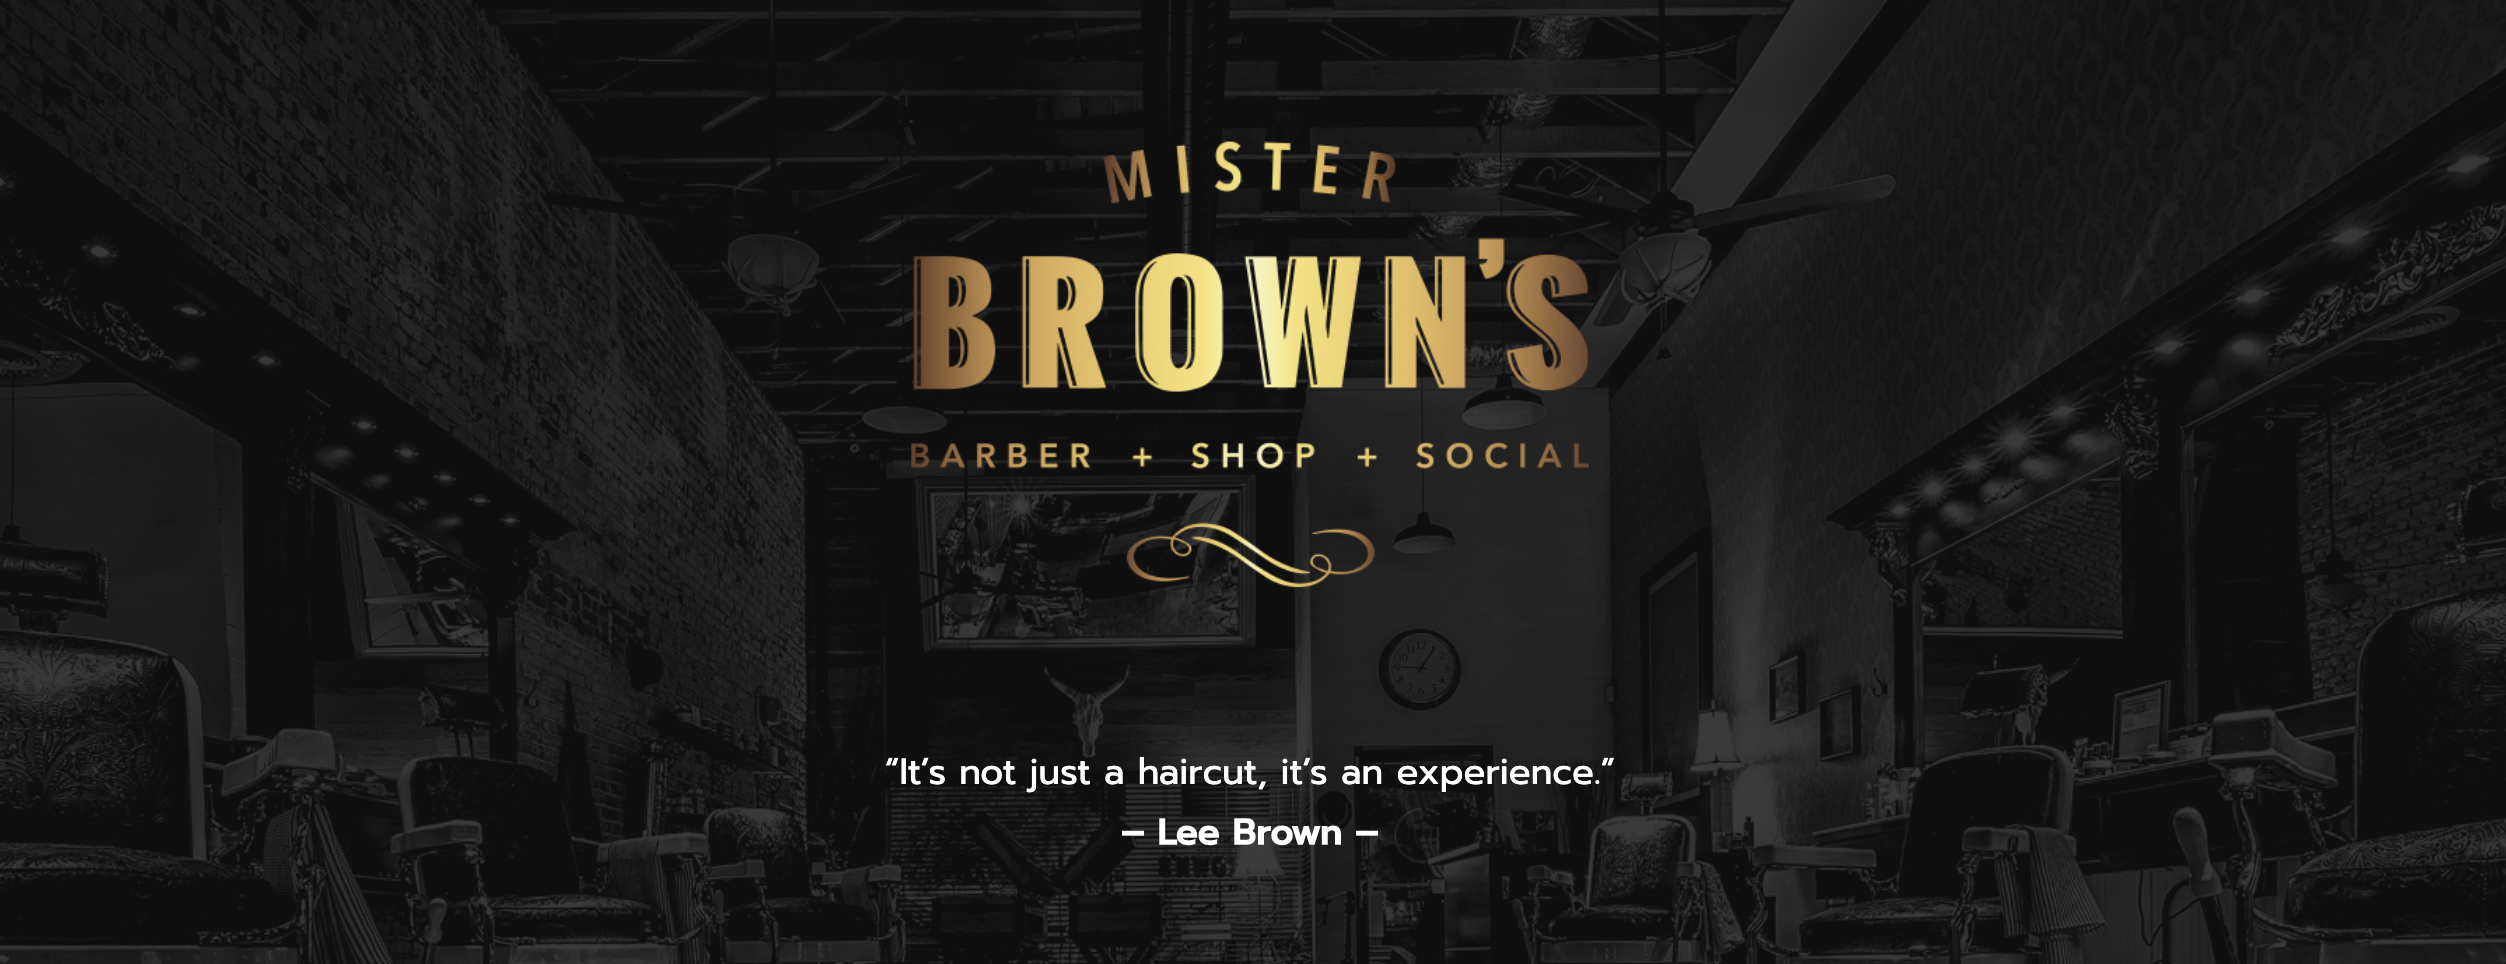 MISTER BROWNS BARBERSHOP